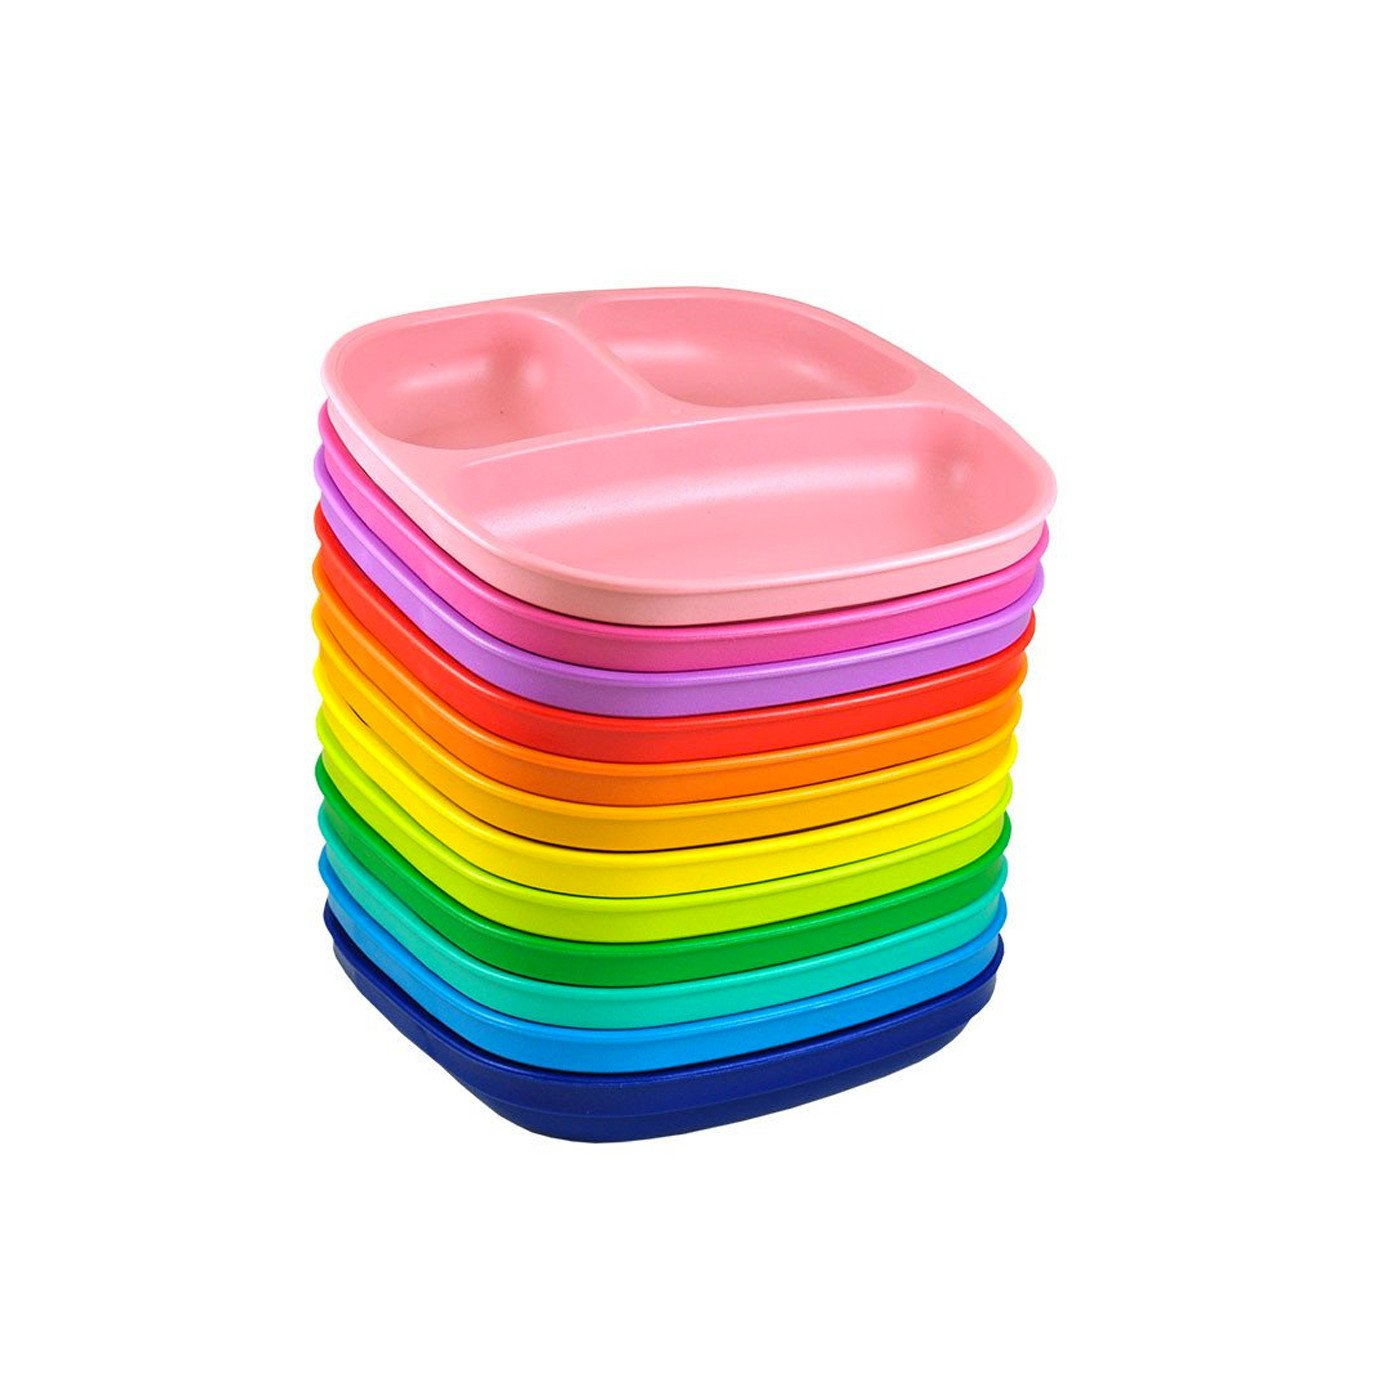 Replay 12 Piece Sets Rainbow Replay Dinnerware Divided Plate at Little Earth Nest Eco Shop